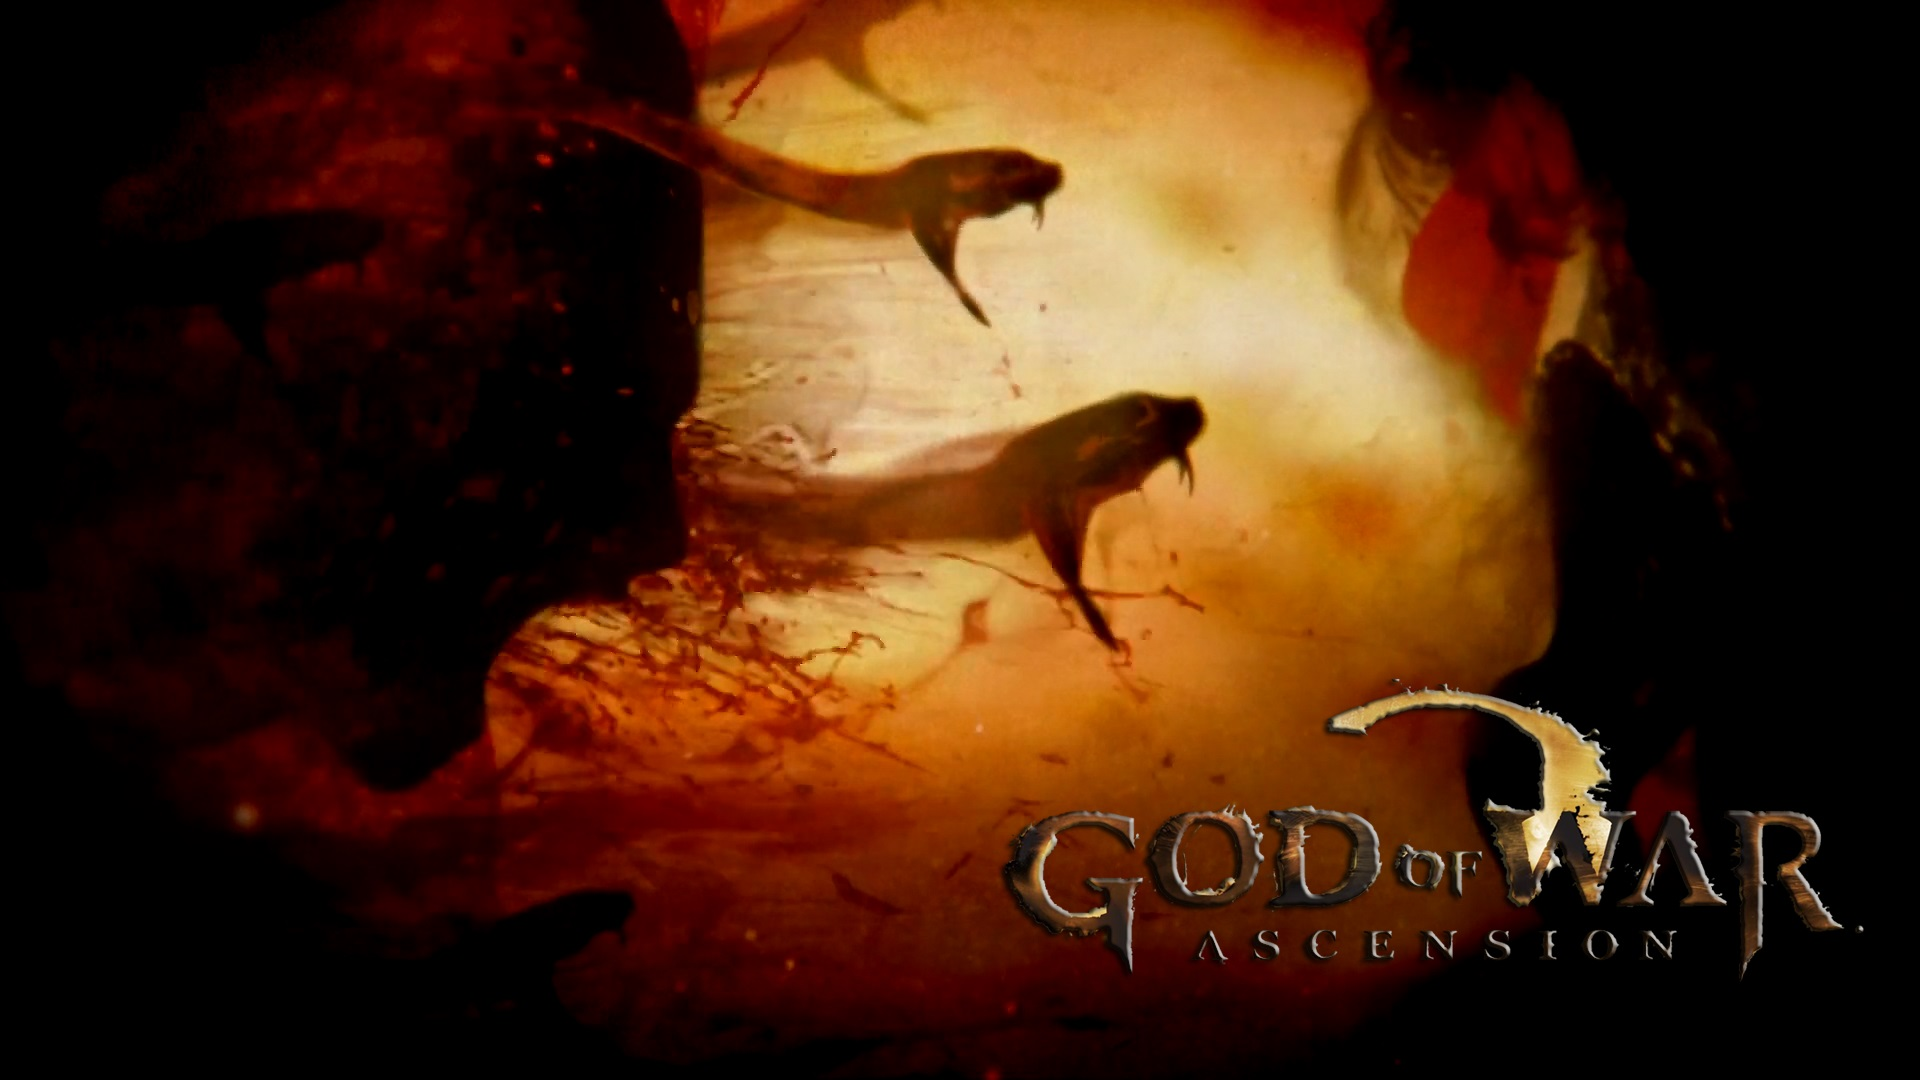 God of War Ascension wallpaper 9